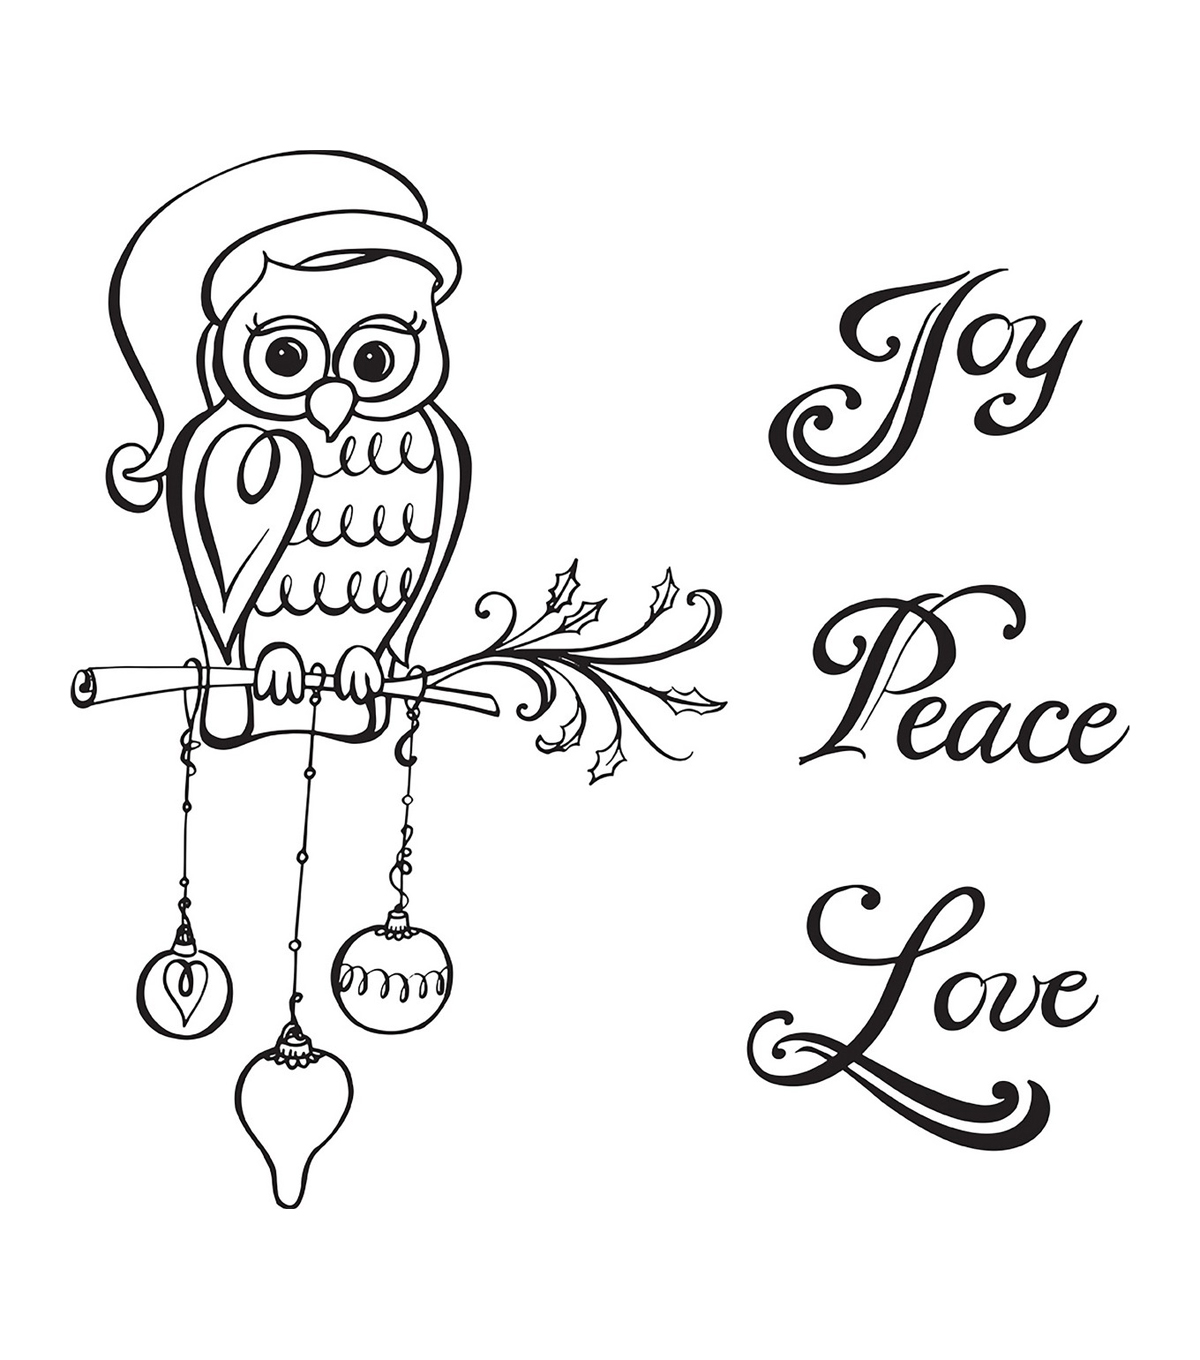 Spellbinders Zenspired Holidays 4 pk Rubber Cling Stamps-Christmas Owl